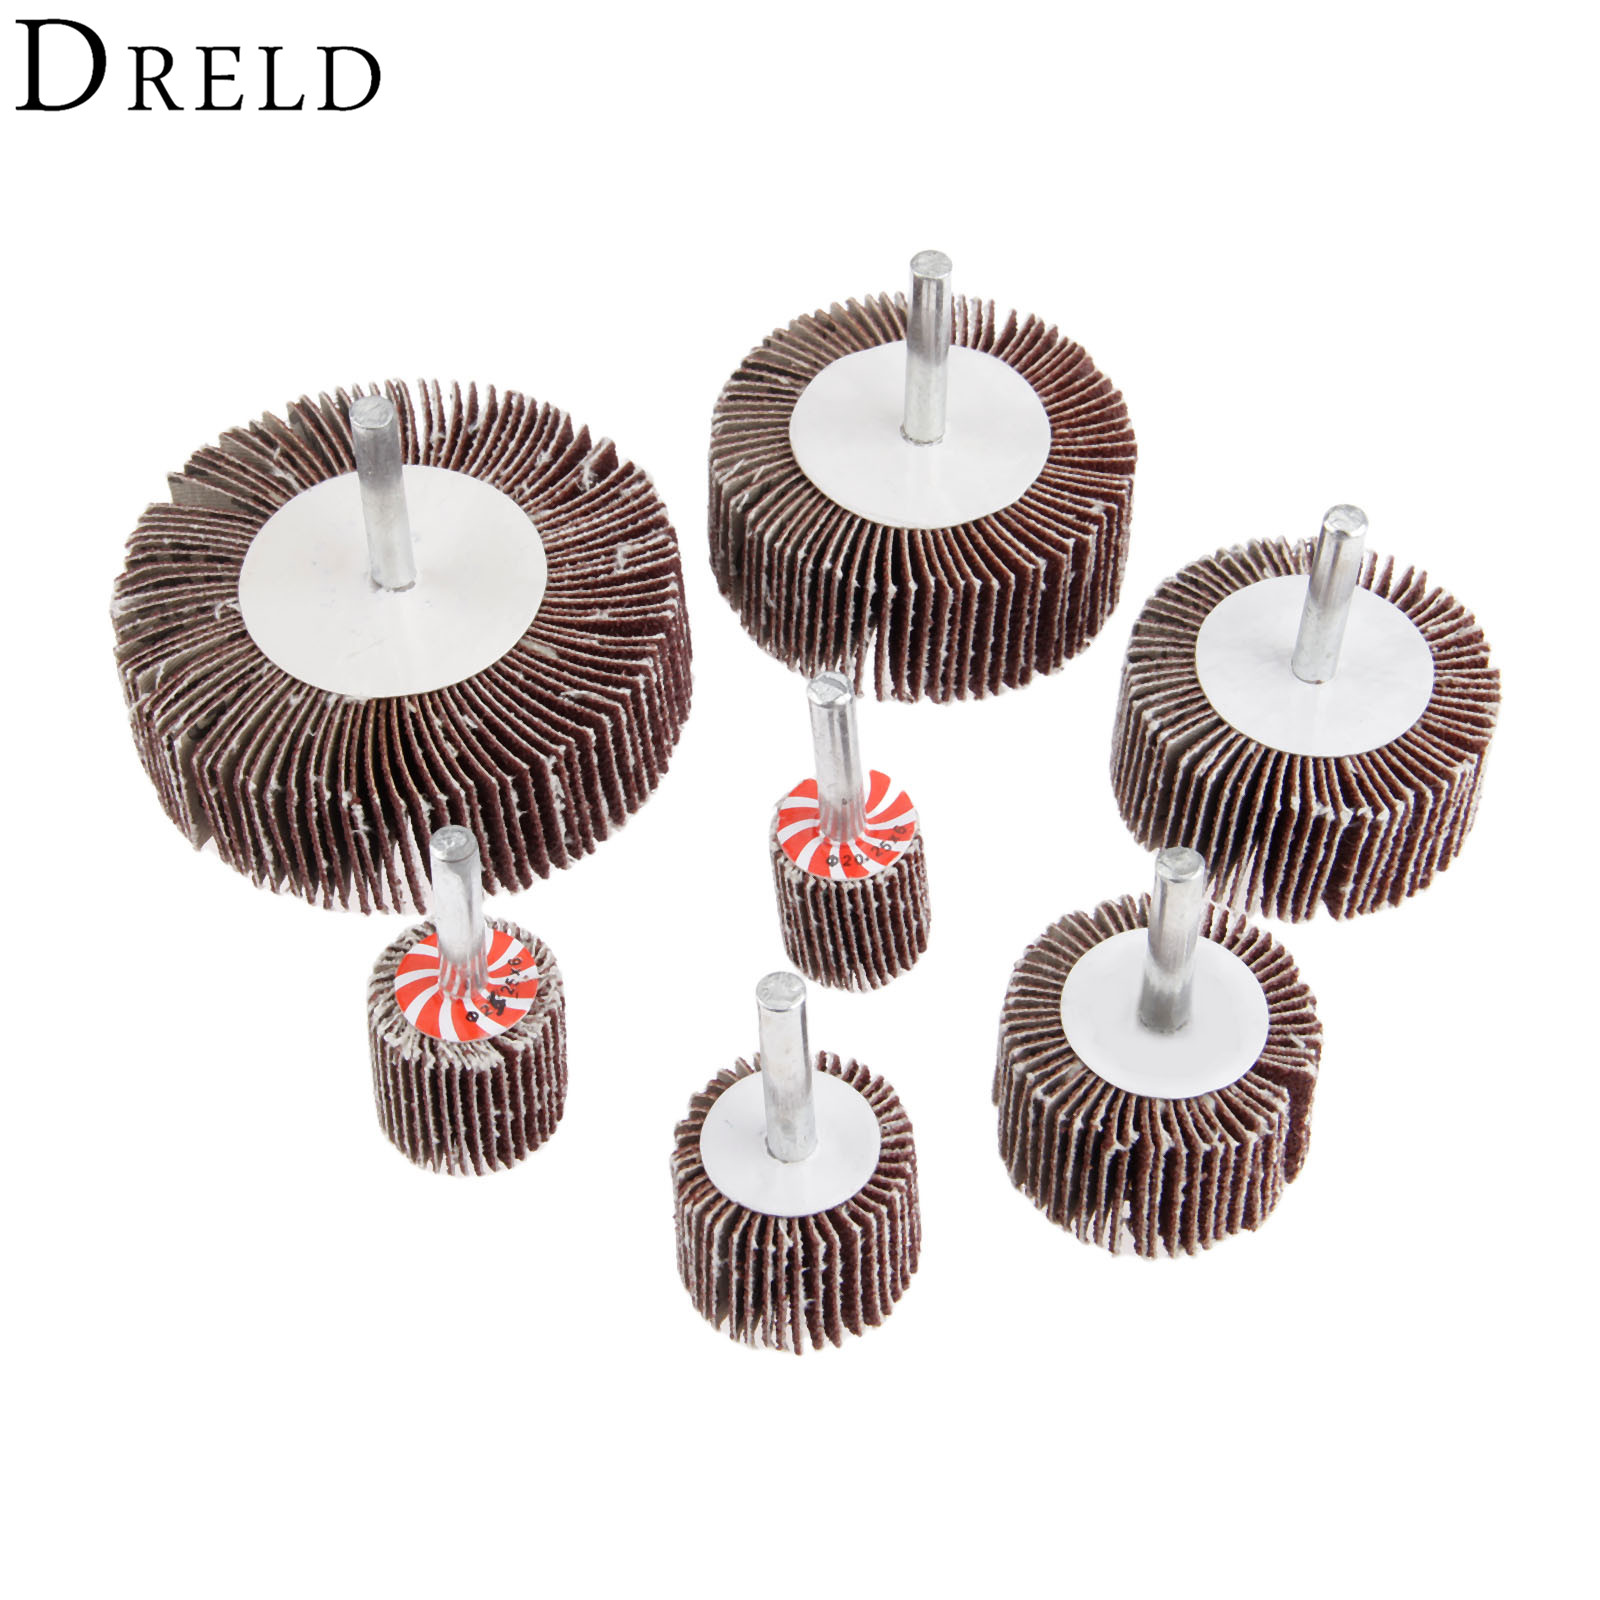 DRELD Grit 80# Grinding Sandpaper Sanding Flap Wheel Head 6mm Shank Mandrel For Rotary Drill Polishing Tool Dremel Accessories